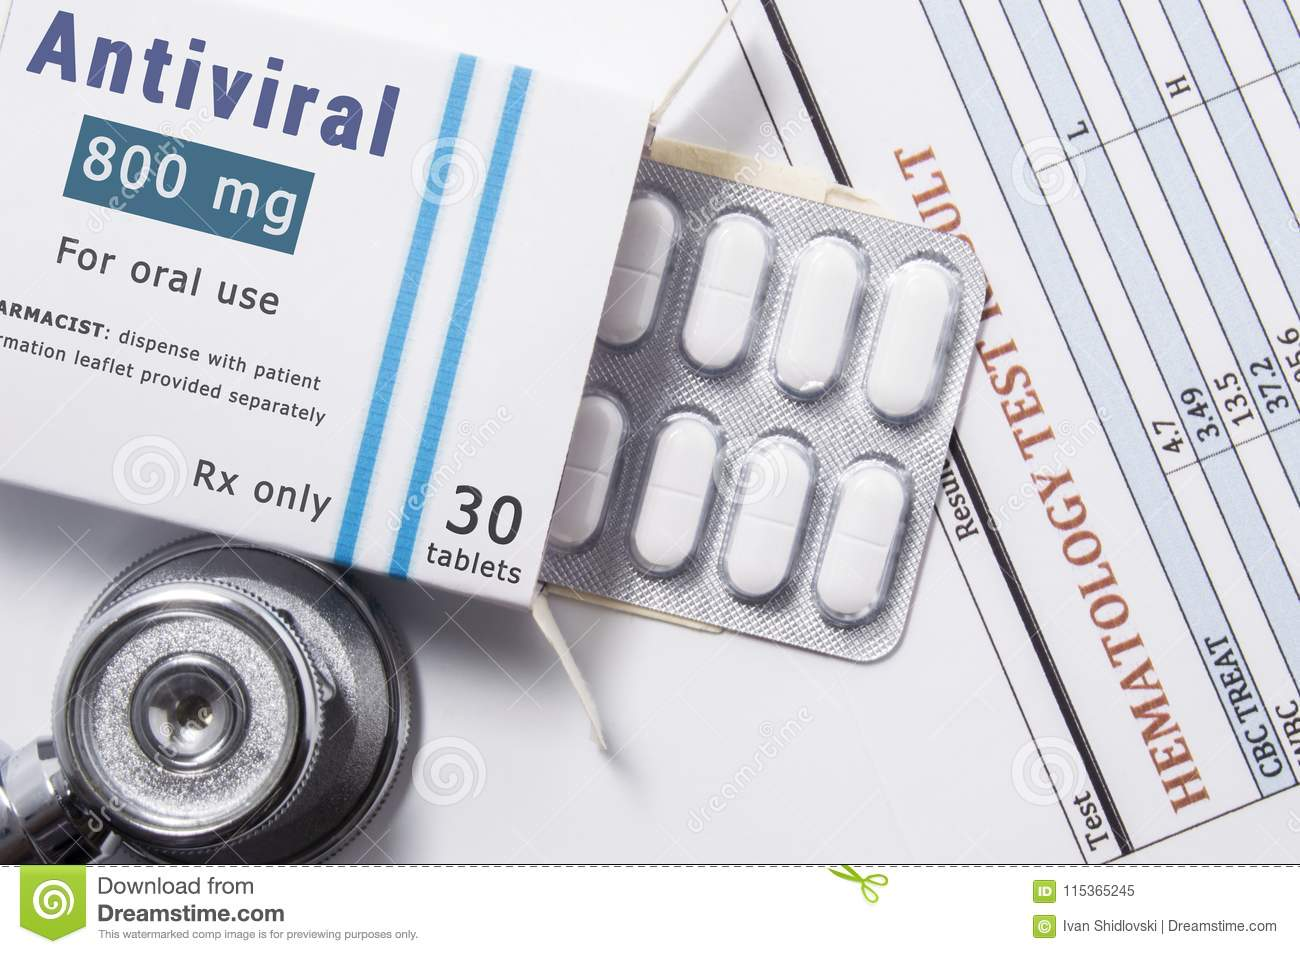 Antiviral drug. Open paper packaging box of medication with name group of drug Antiviral, blister with pills, next to stethoscope